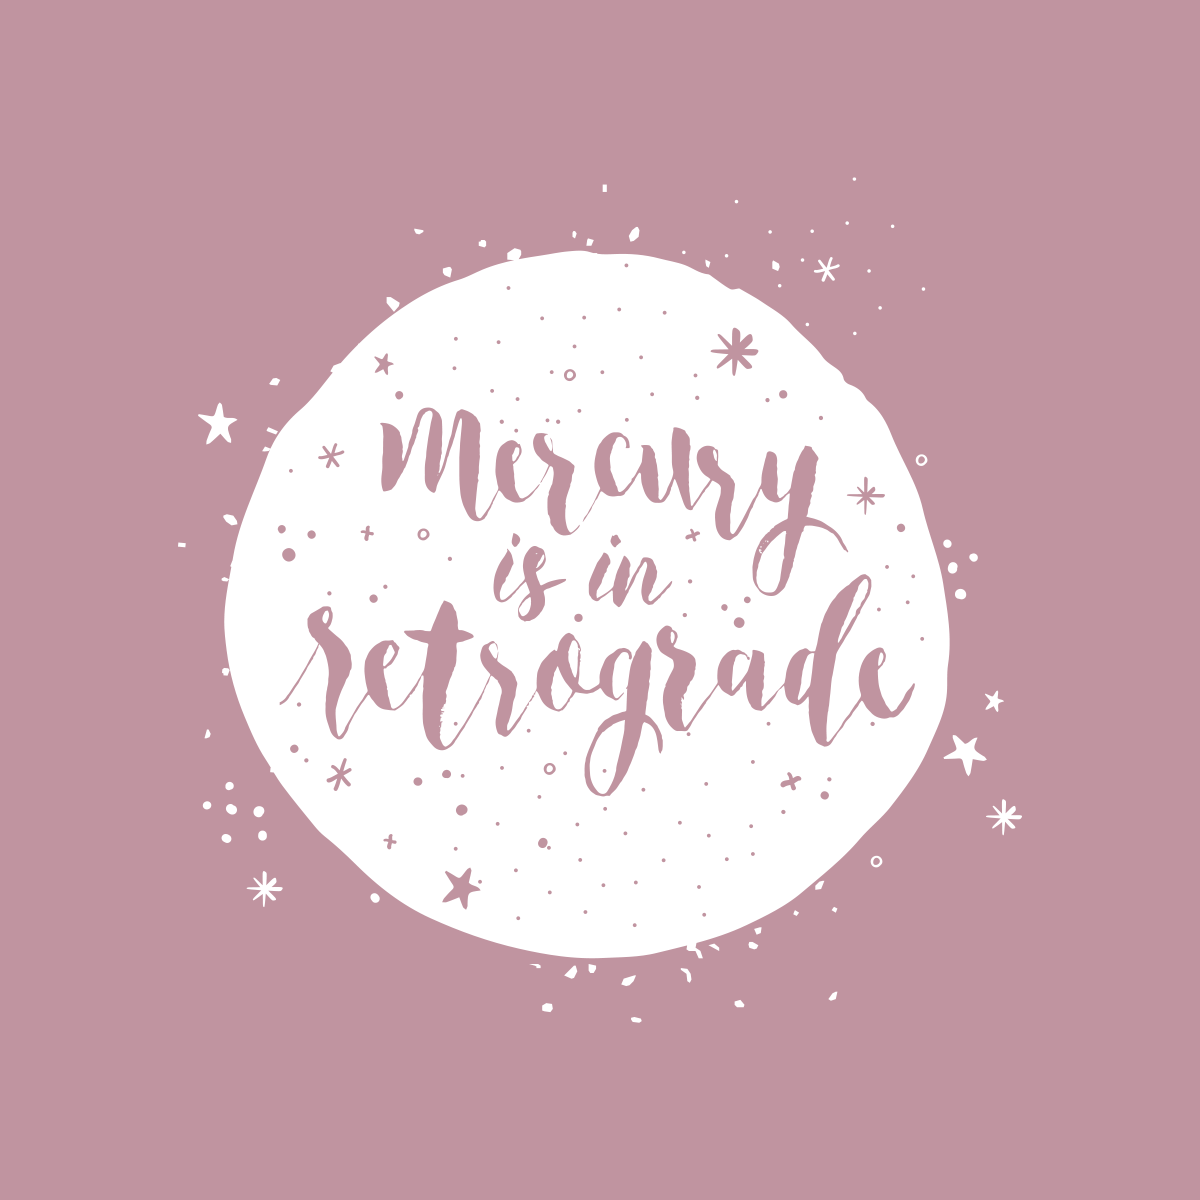 Mercury is in Retrograde lettering by Pace Creative Design Studio